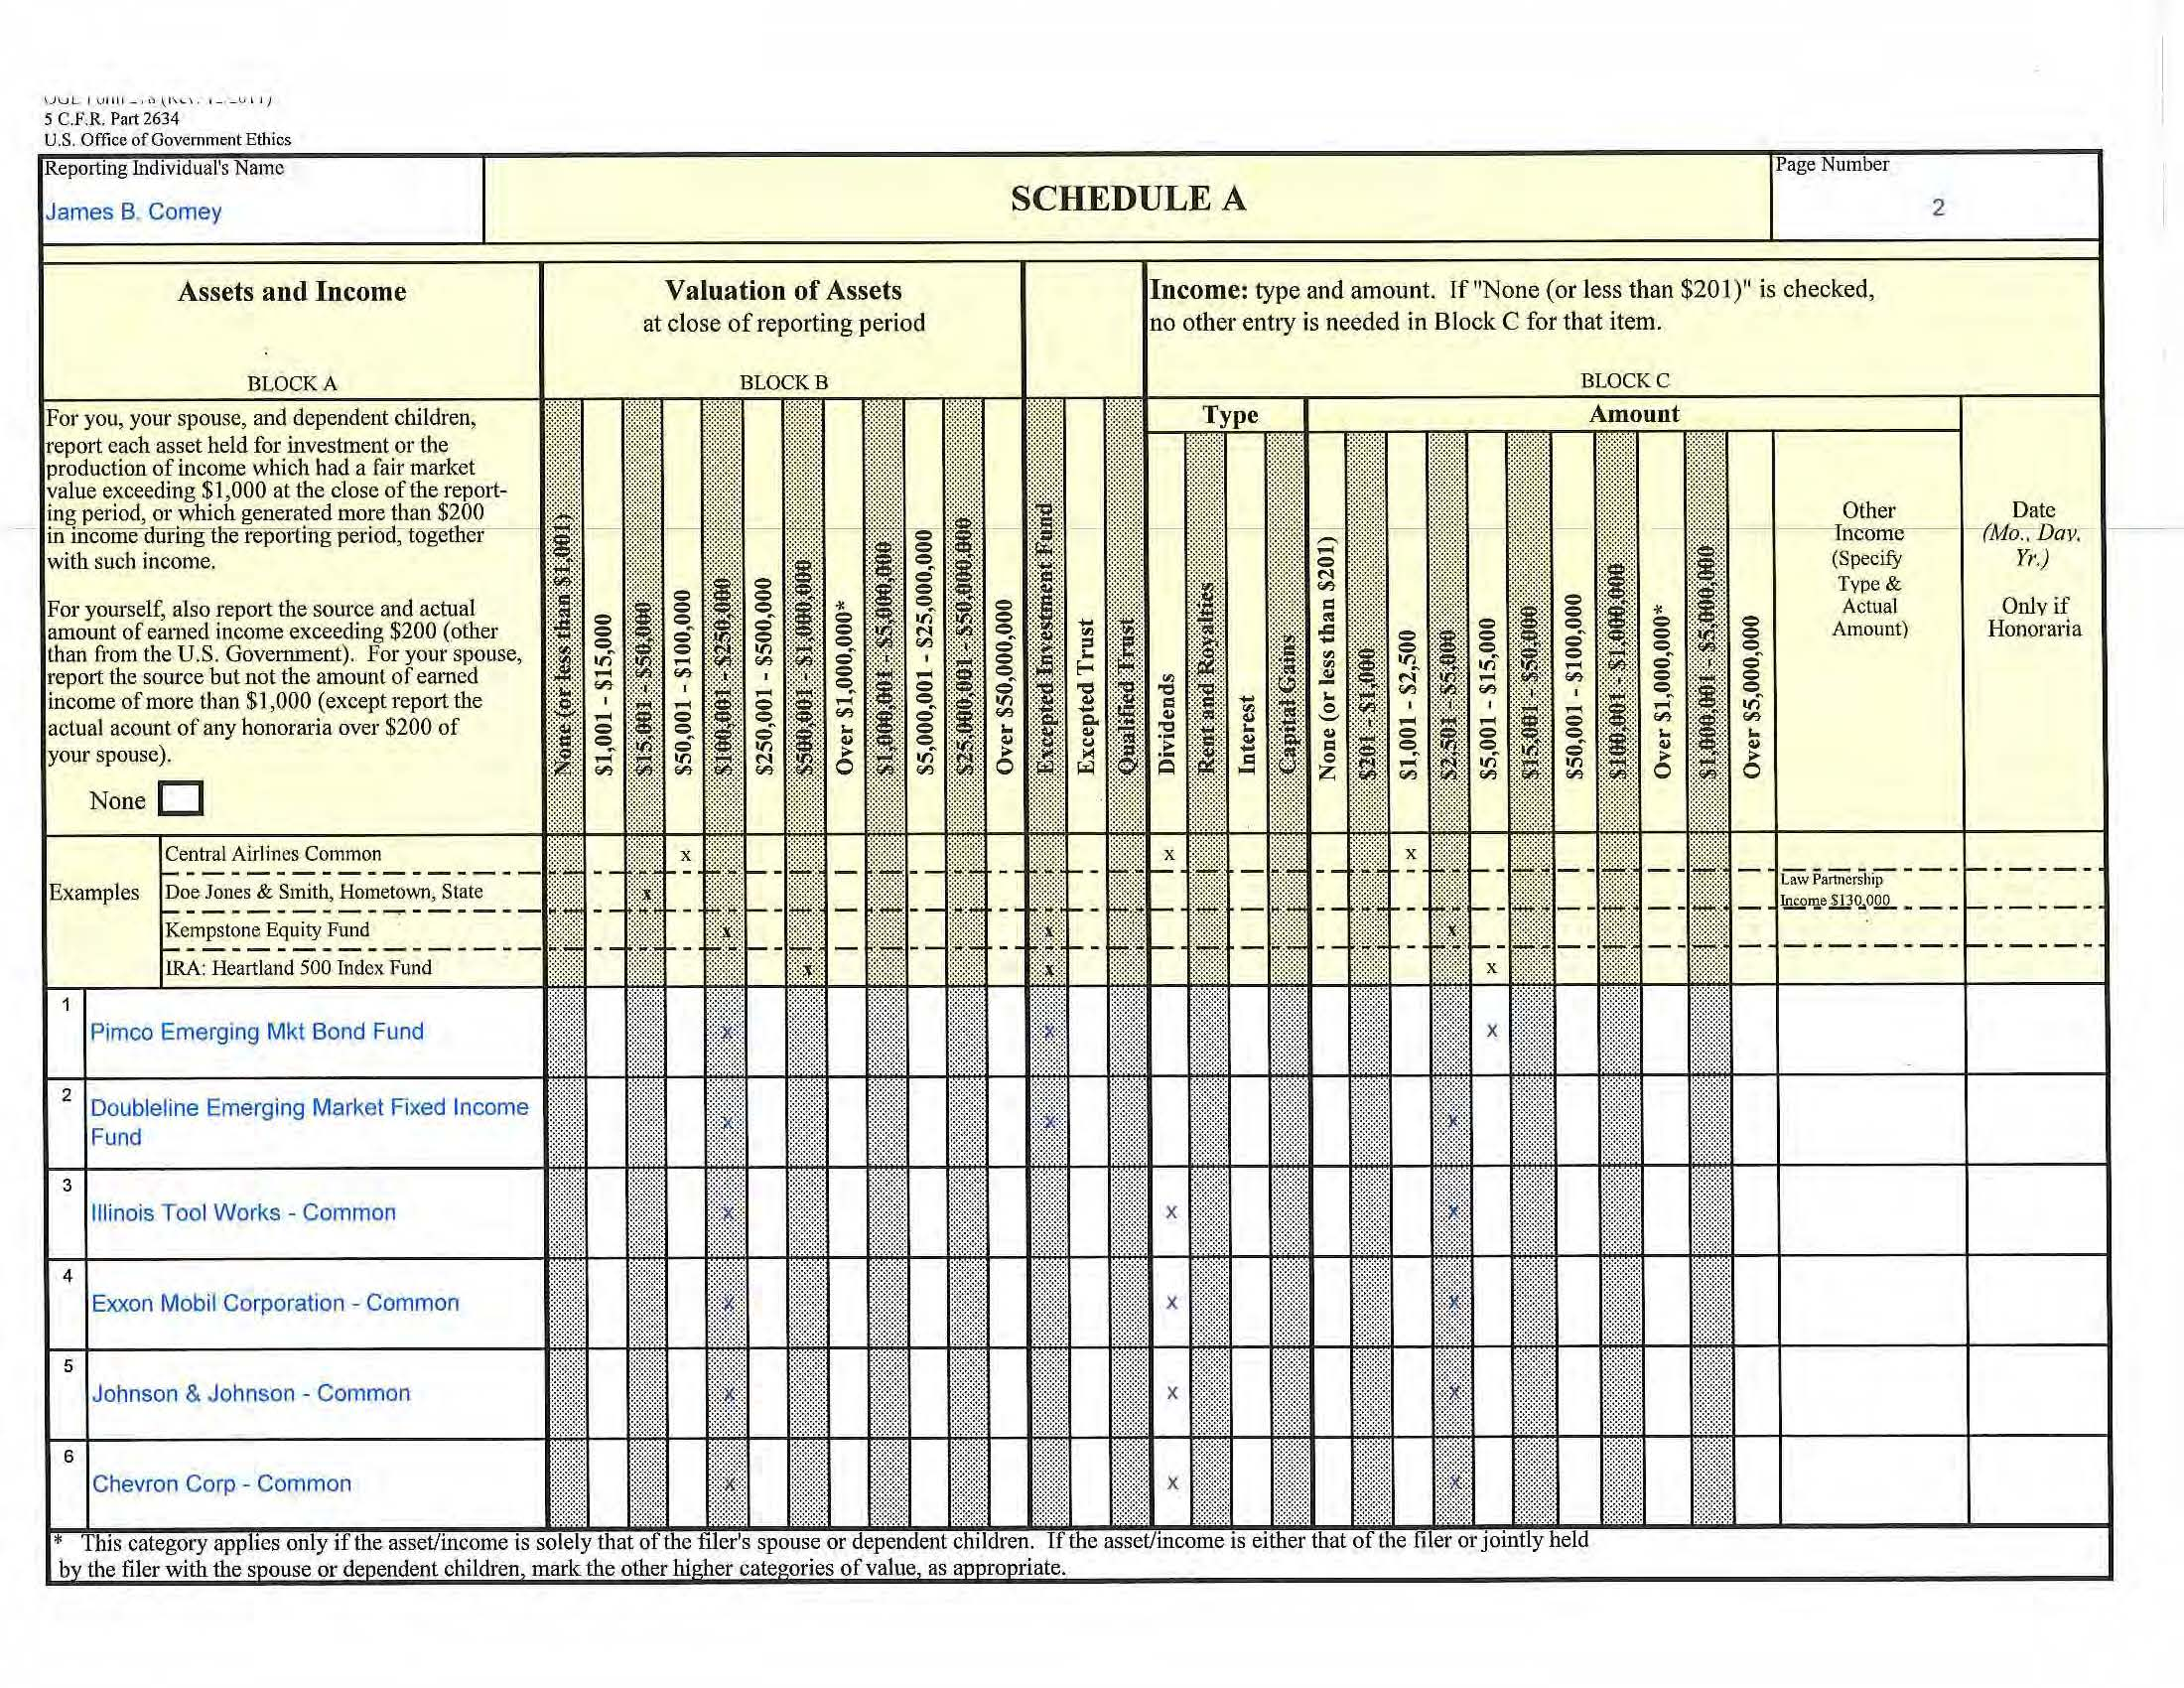 James-B-Comey-2013Form278NewEntrant_Page_02.jpg